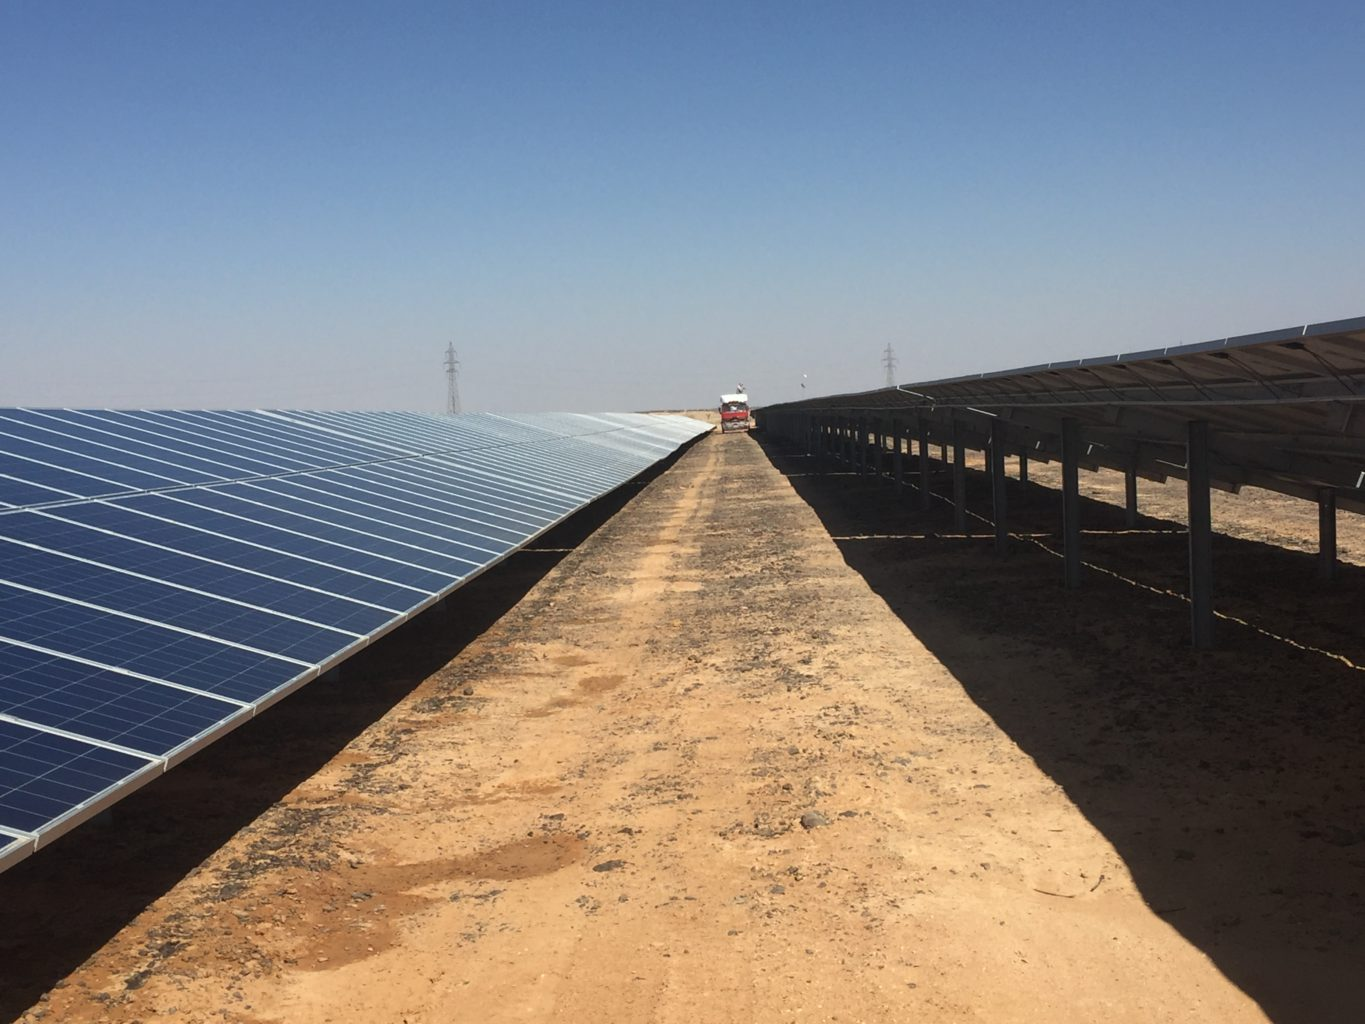 Promoting solar energy across the Middle East | The Switchers